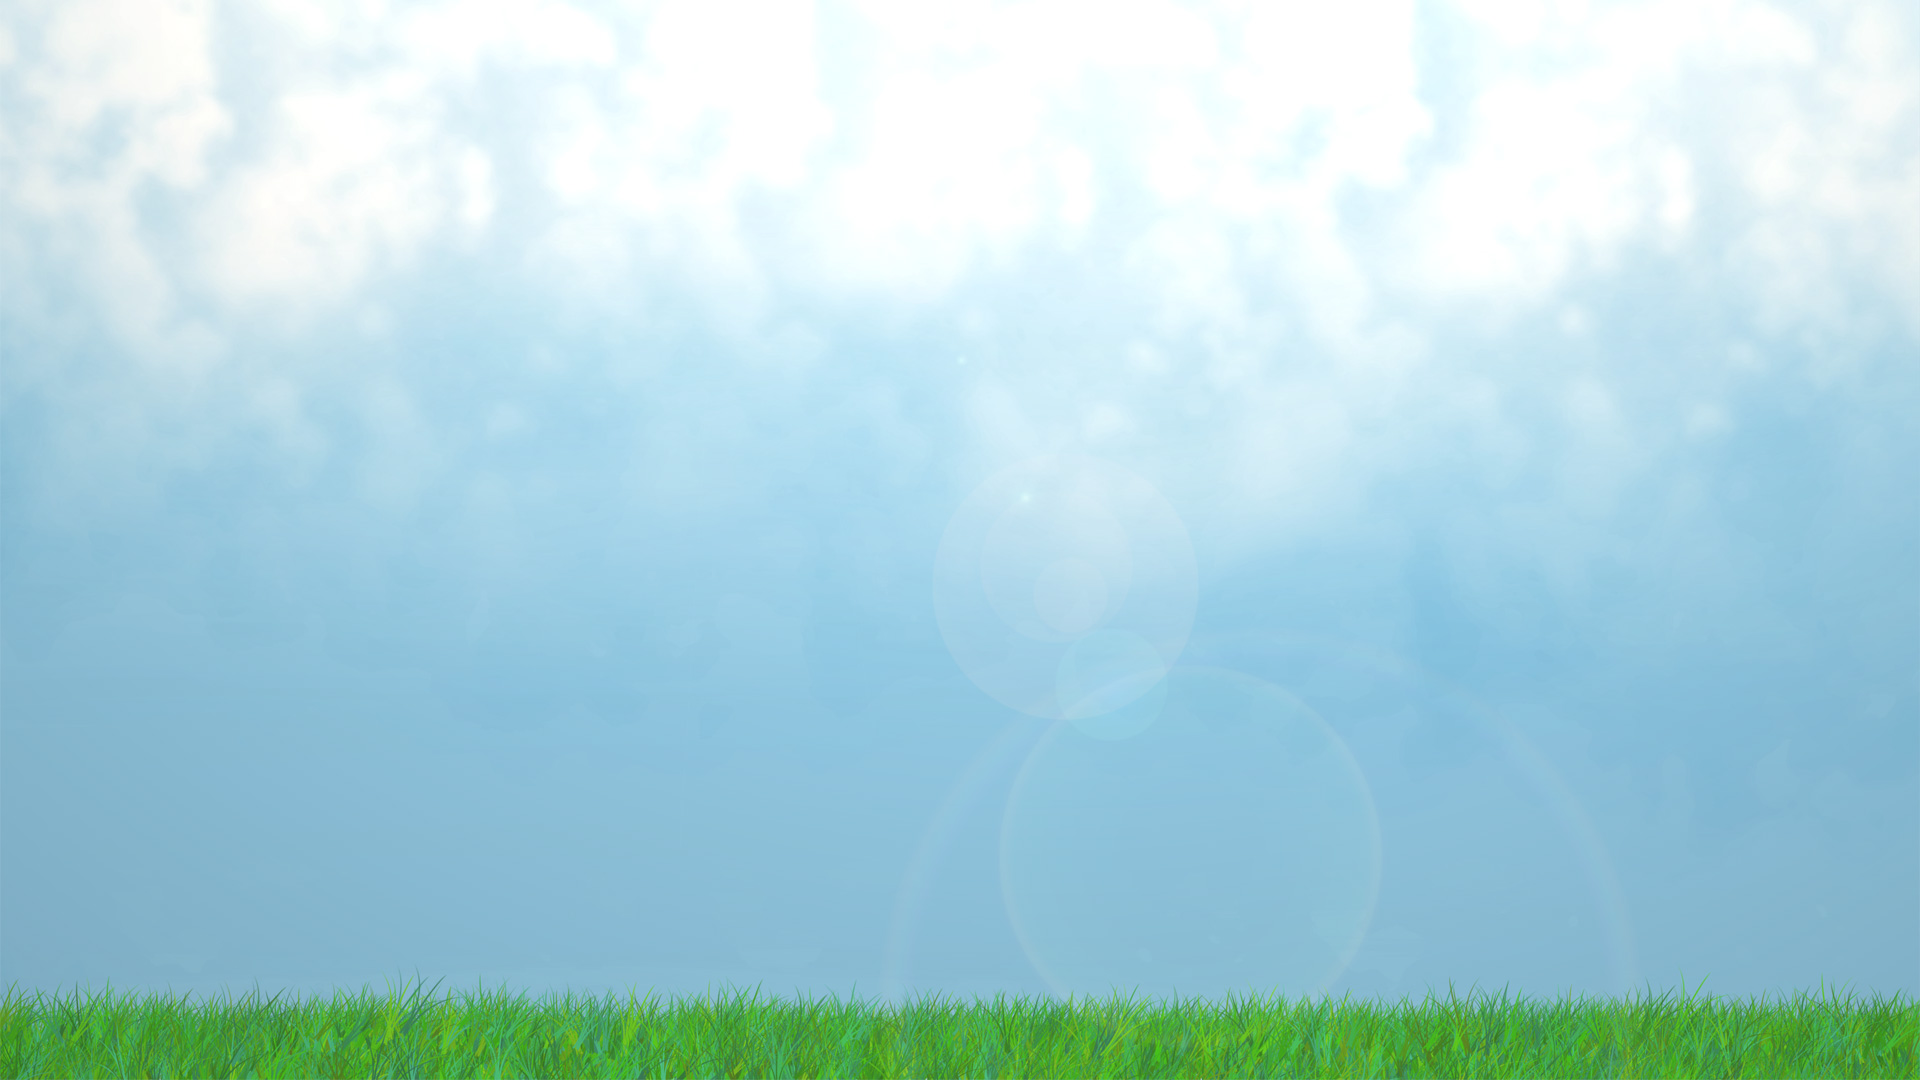 Green Grass And Sky Background